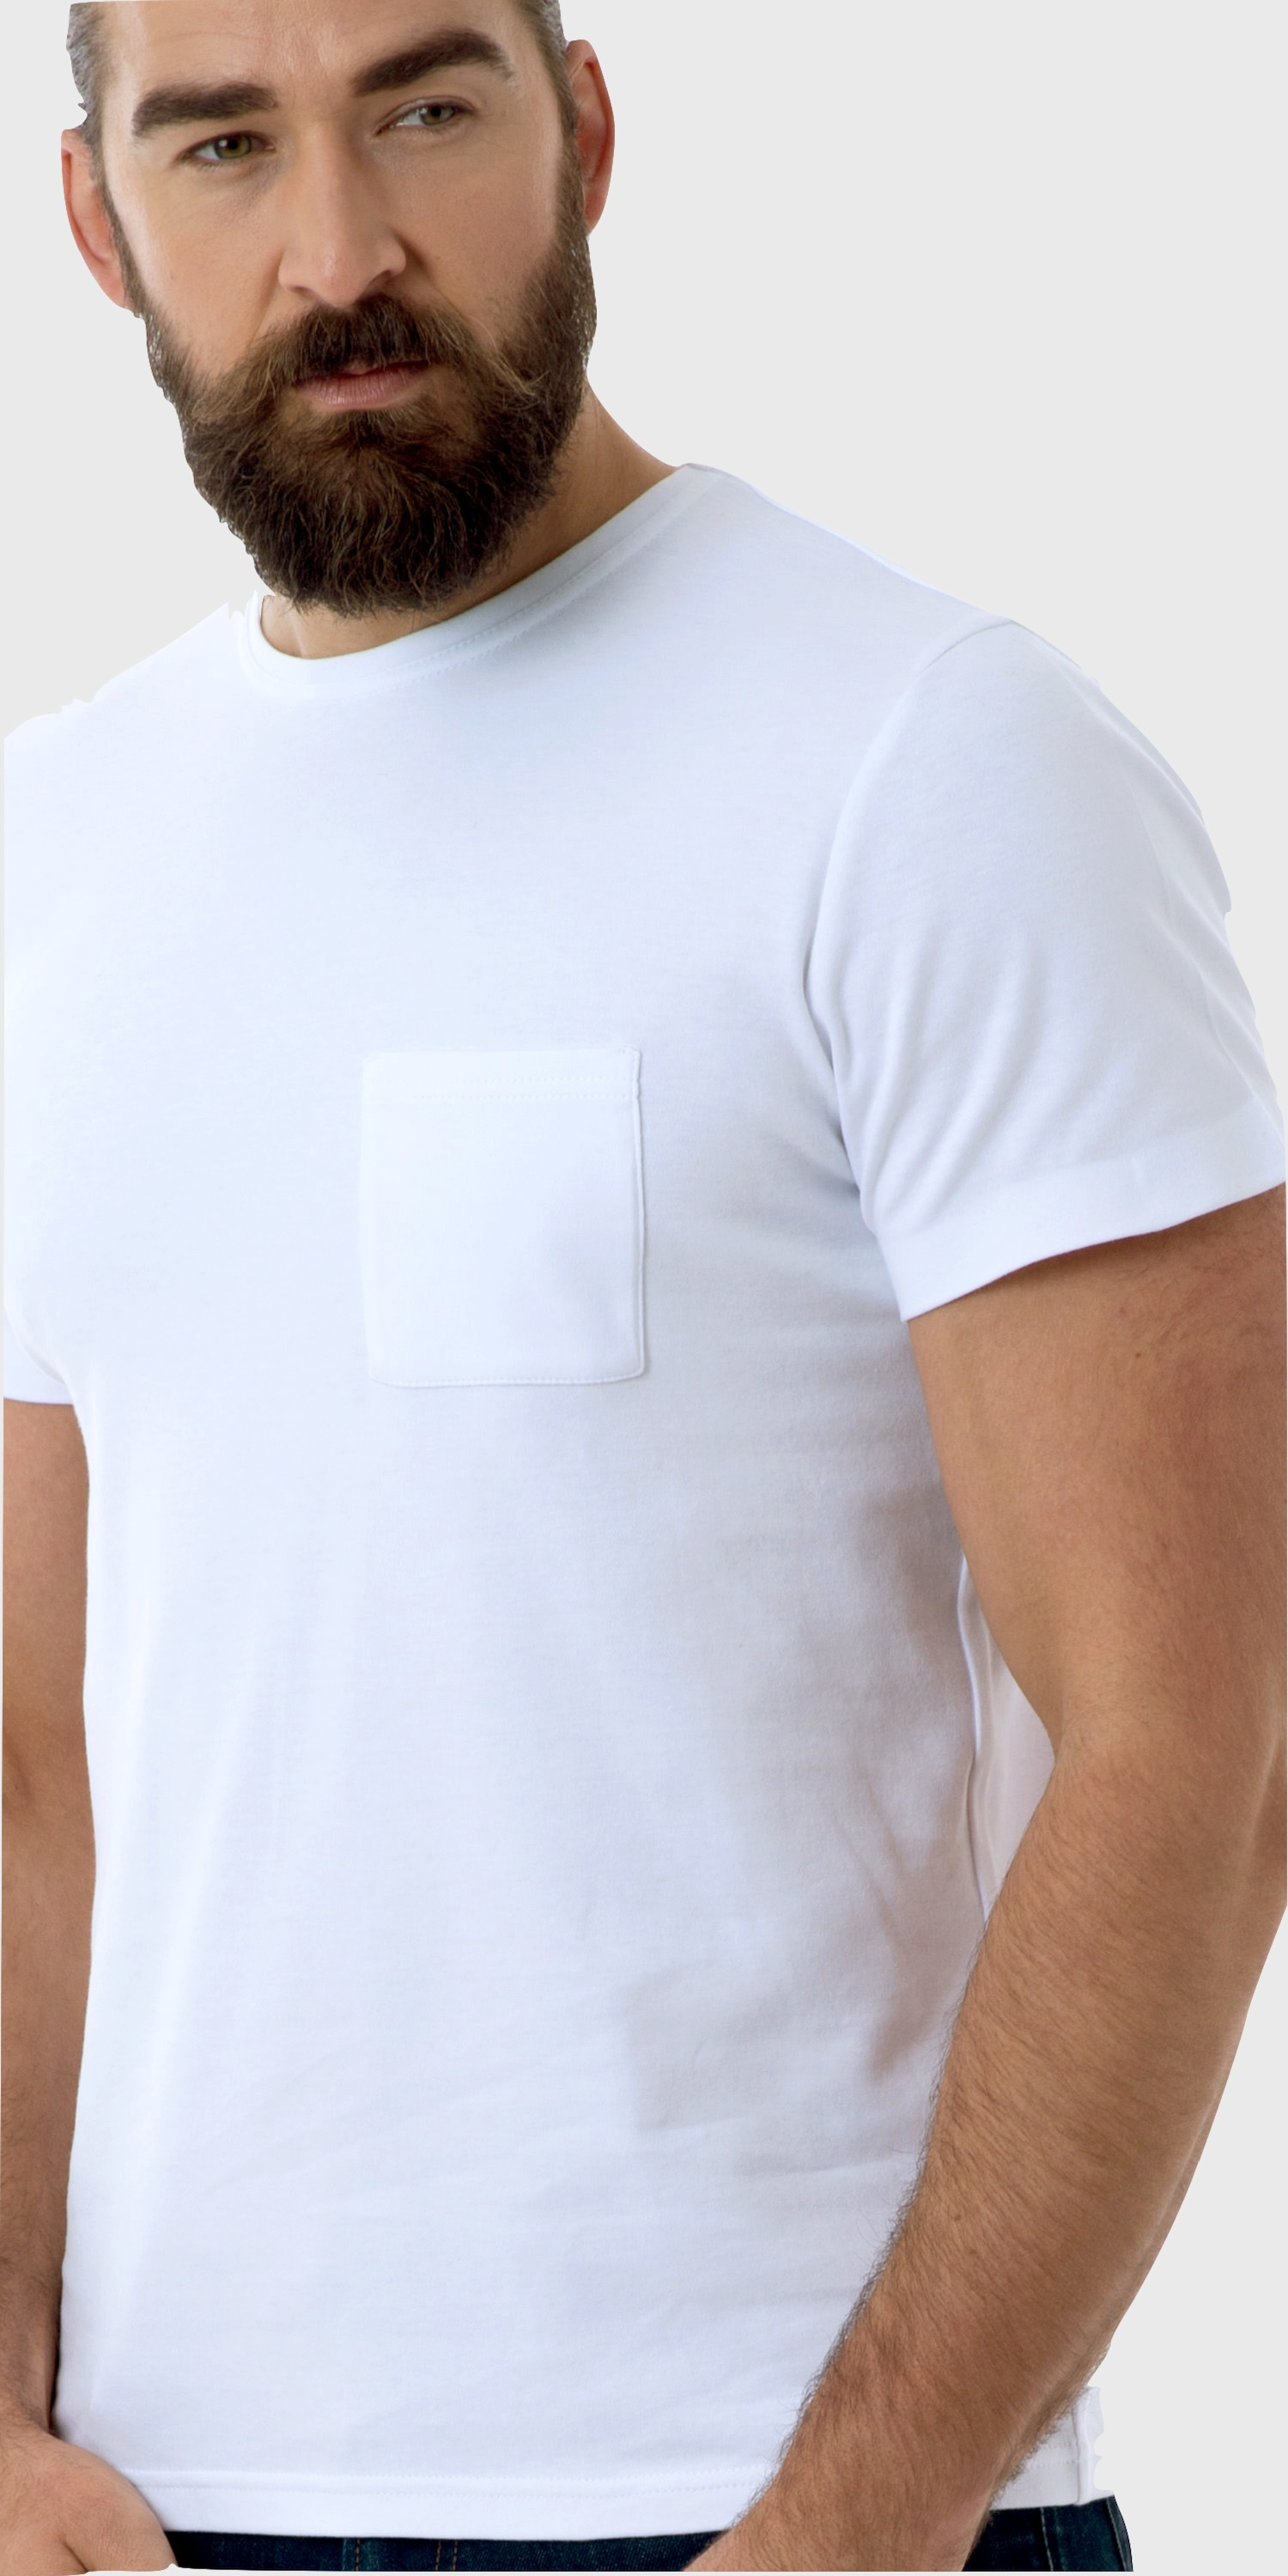 mens white t-shirt with pocket close up